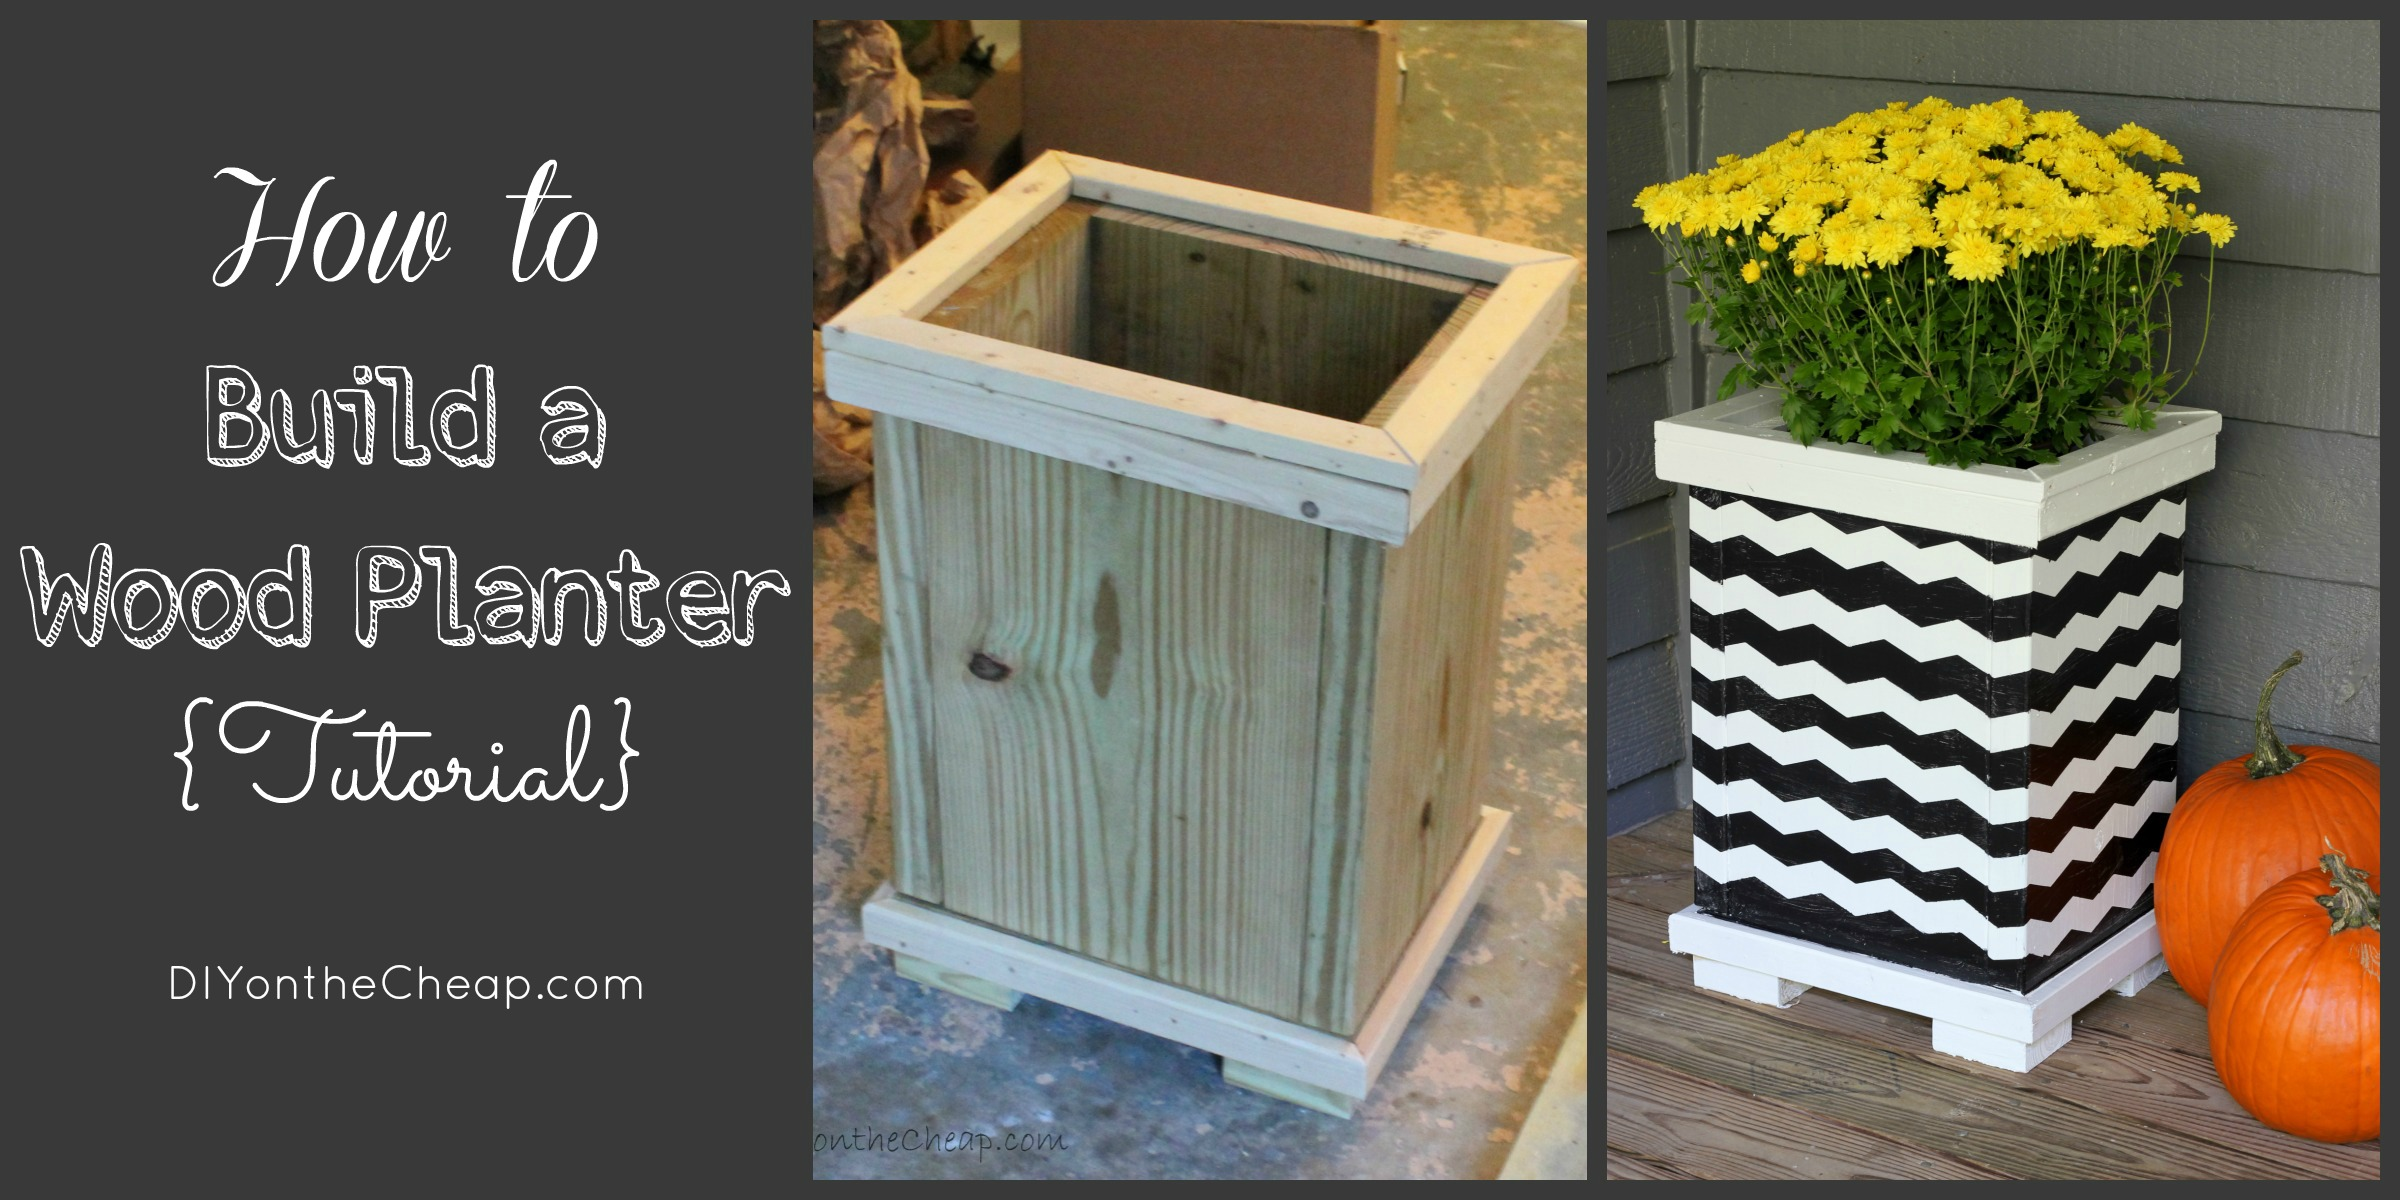 How To Build A Wood Planter Tutorial